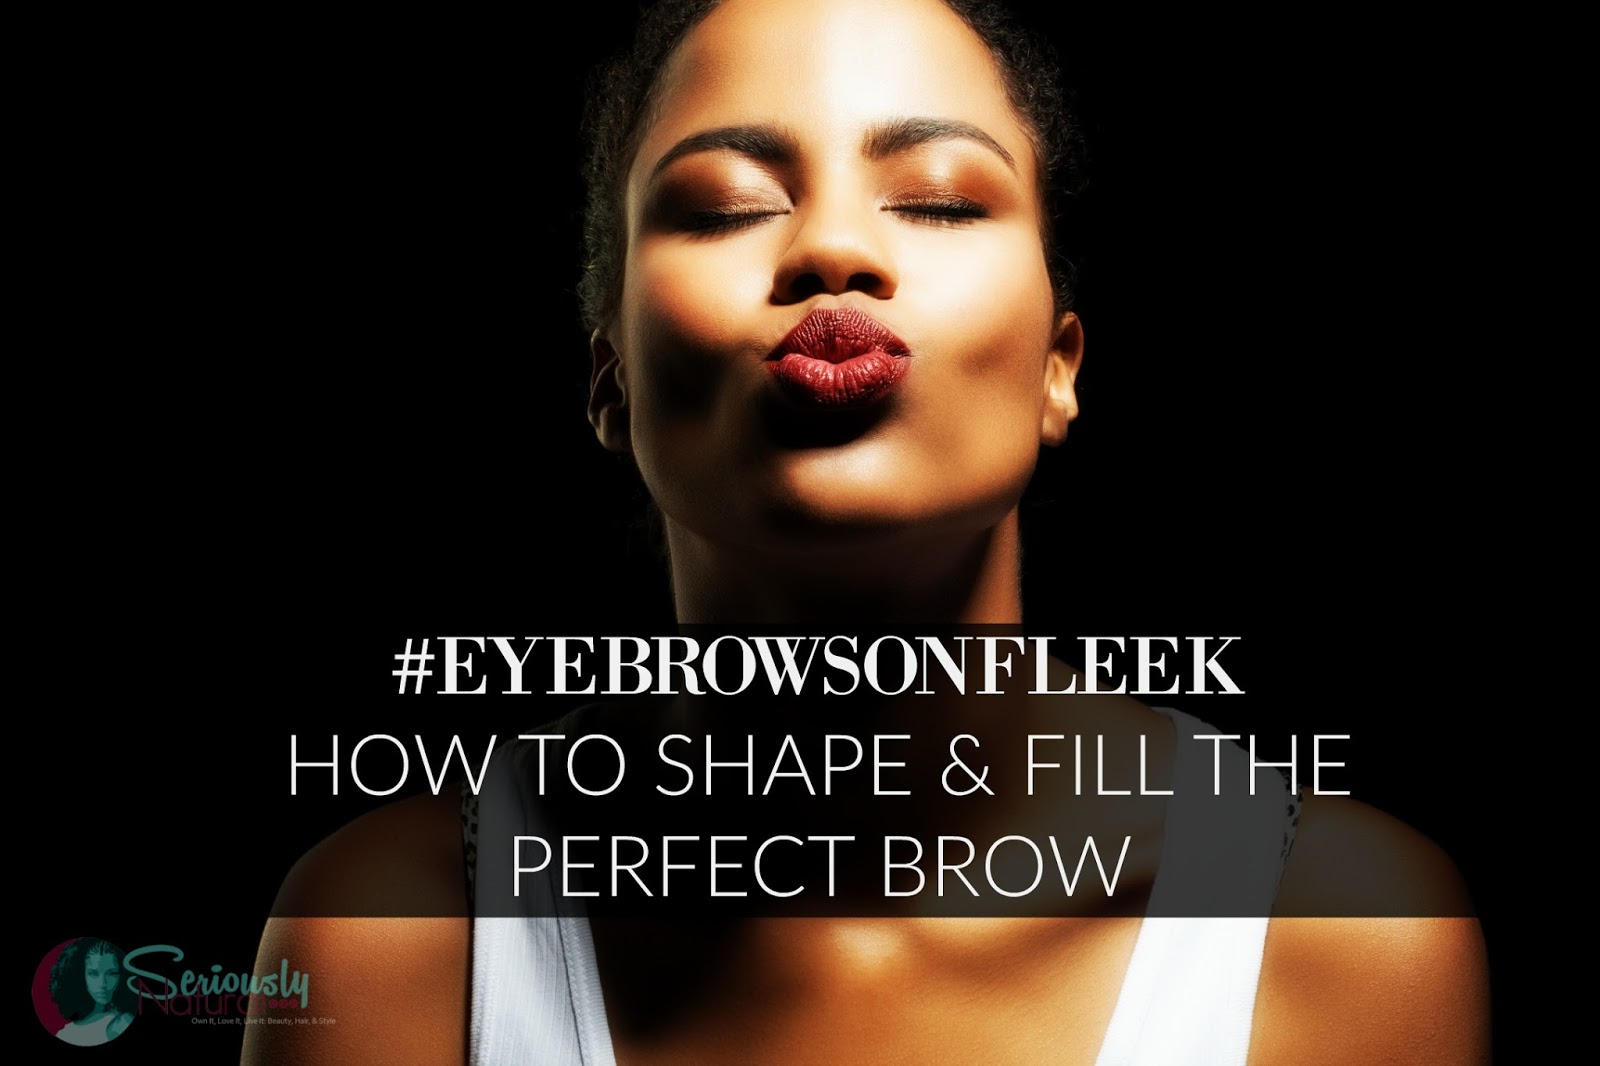 #EYEBROWSONFLEEK: HOW TO SHAPE & FILL THE PERFECT BROW